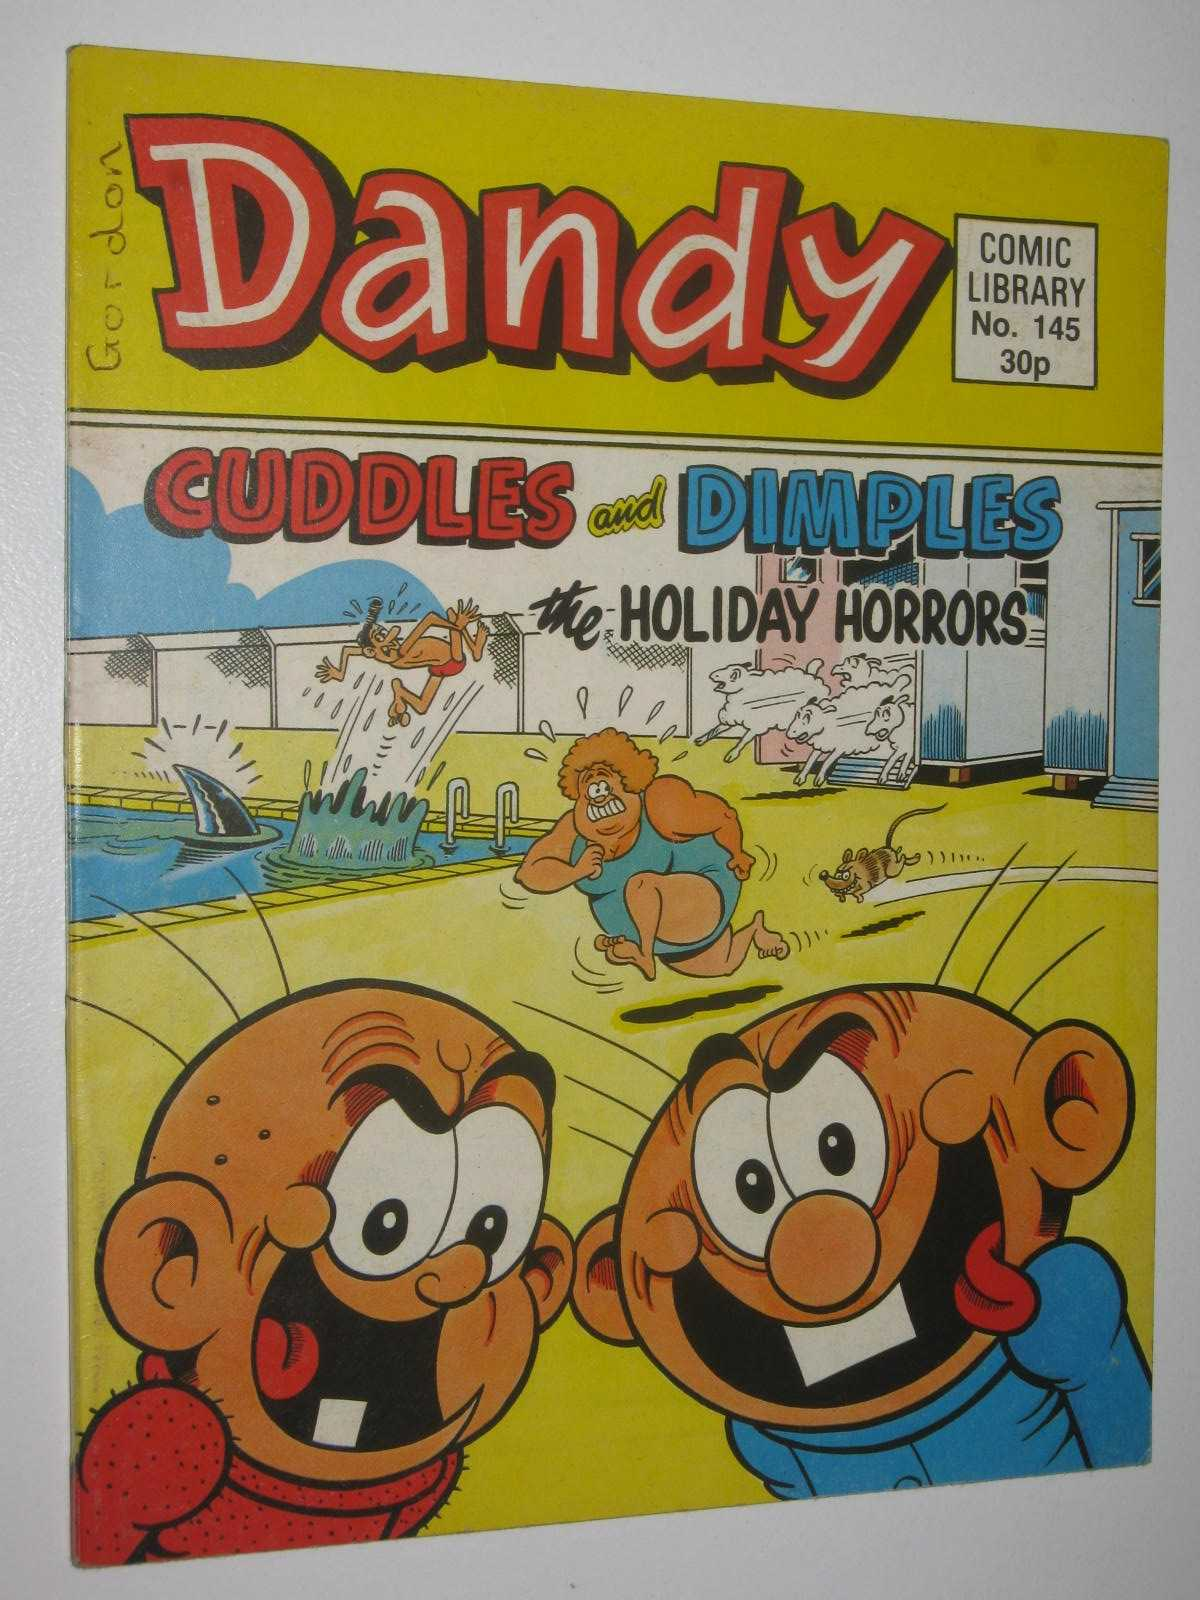 """Image for Cuddles and Dimples in the """"Holiday Horrors"""" - Dandy Comic Library #145"""